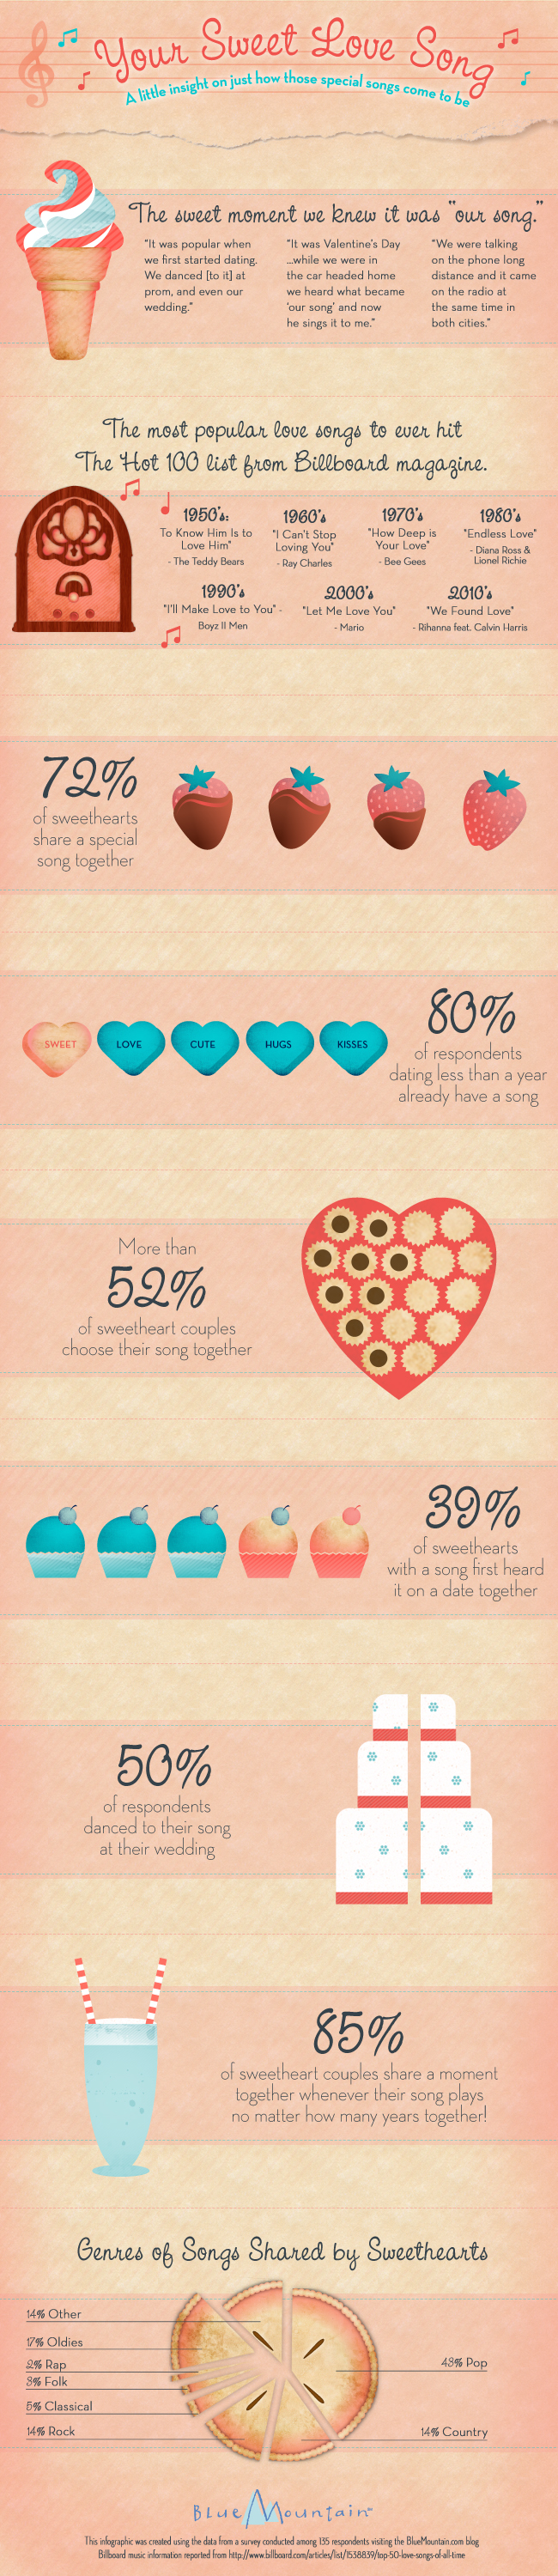 How Sweethearts Find Their Love Song [Infographic]